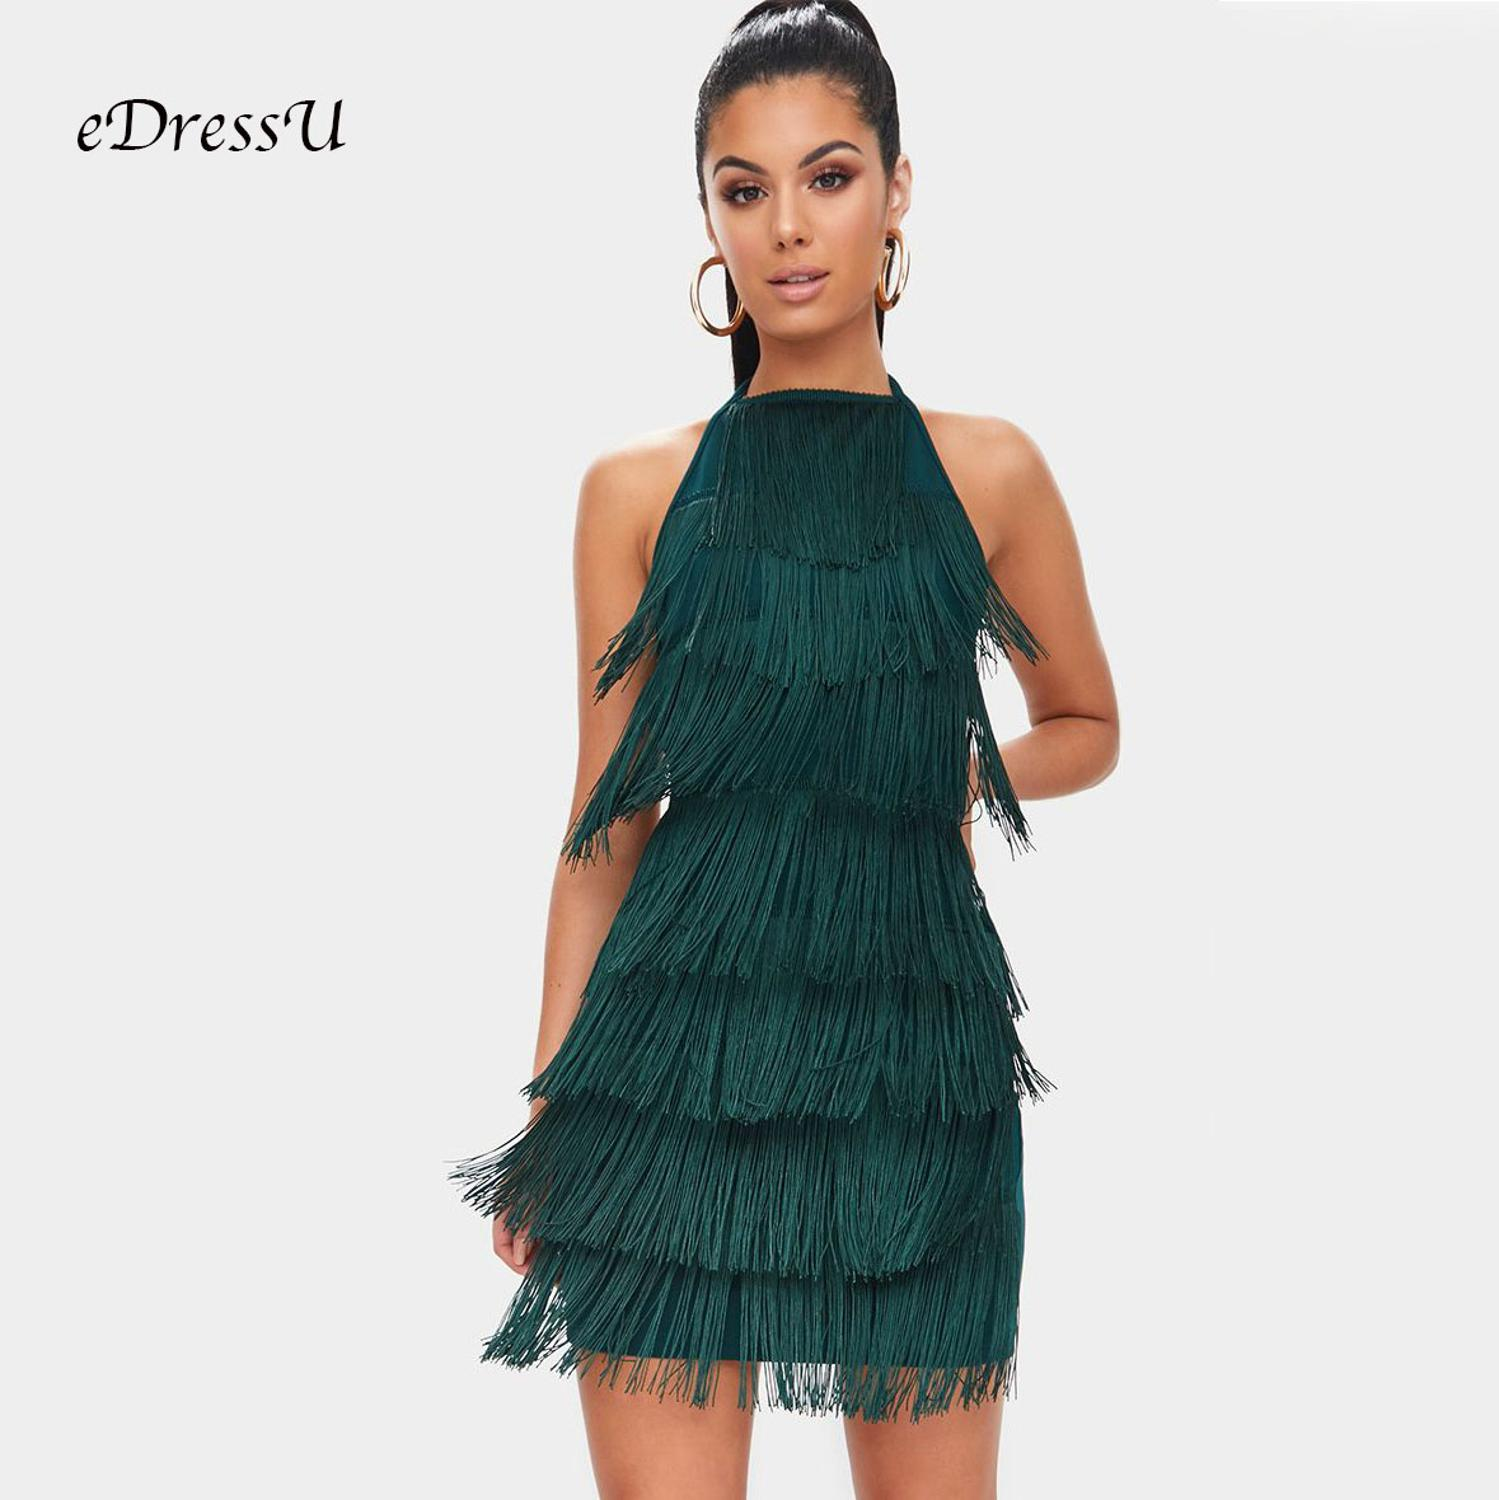 Women Tassel Dress Green Halter Tie Back Sexy Sweet Fringed Cocktail Party Dress Sheath Bodycon Bandage Club Date Wear MS A134 in Dresses from Women 39 s Clothing